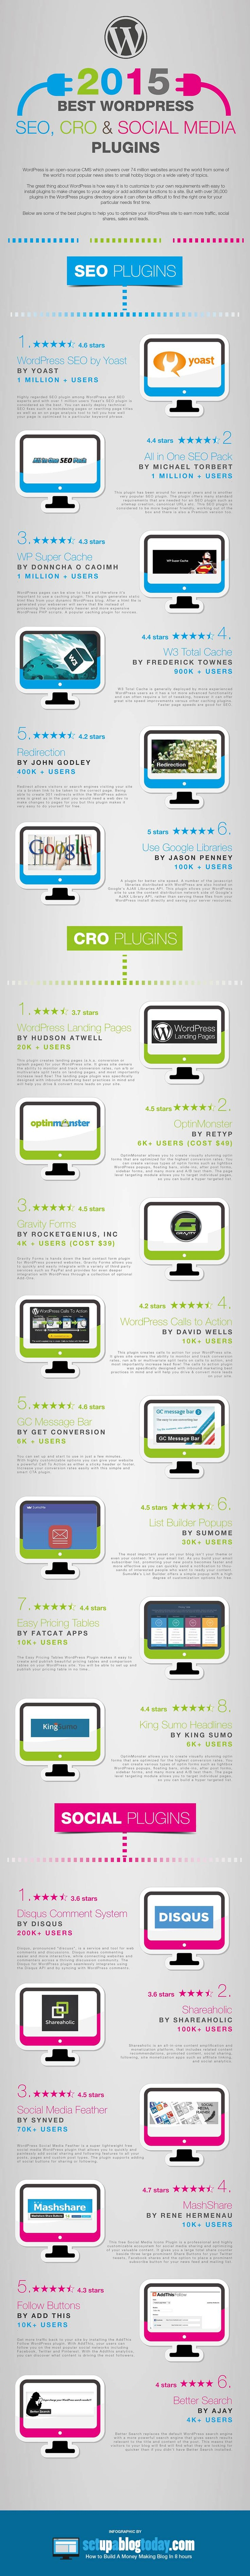 Best WordPress Plugins for SEO, Social And CRO in 2015 WordPress is an open-source CMS which powers over 74 million websites around the world